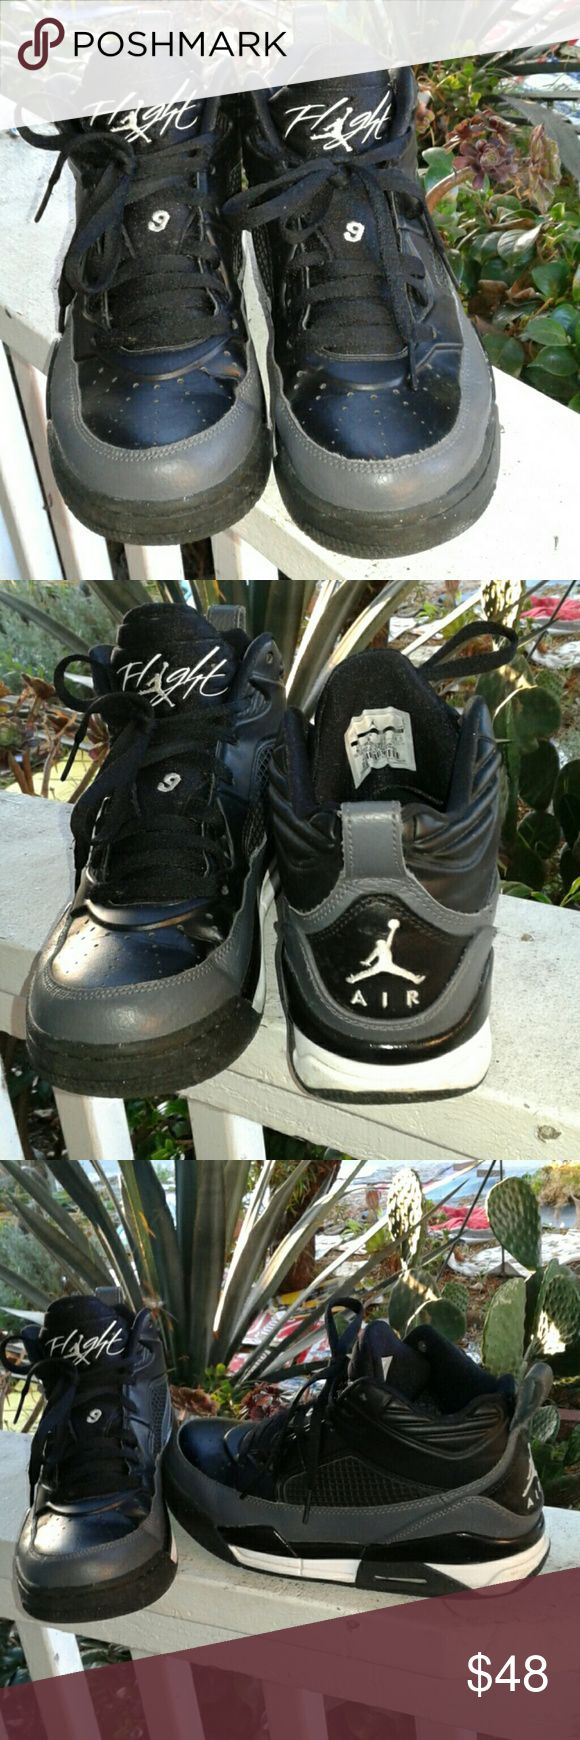 NIKE AIR JORDAN FLIGHT 9 BLACK/GRAY/WHITE YOUTH Size 6.5 youth, ♡♡♡GREAT PRE-LOVED CONDITION NIKE Shoes Sneakers